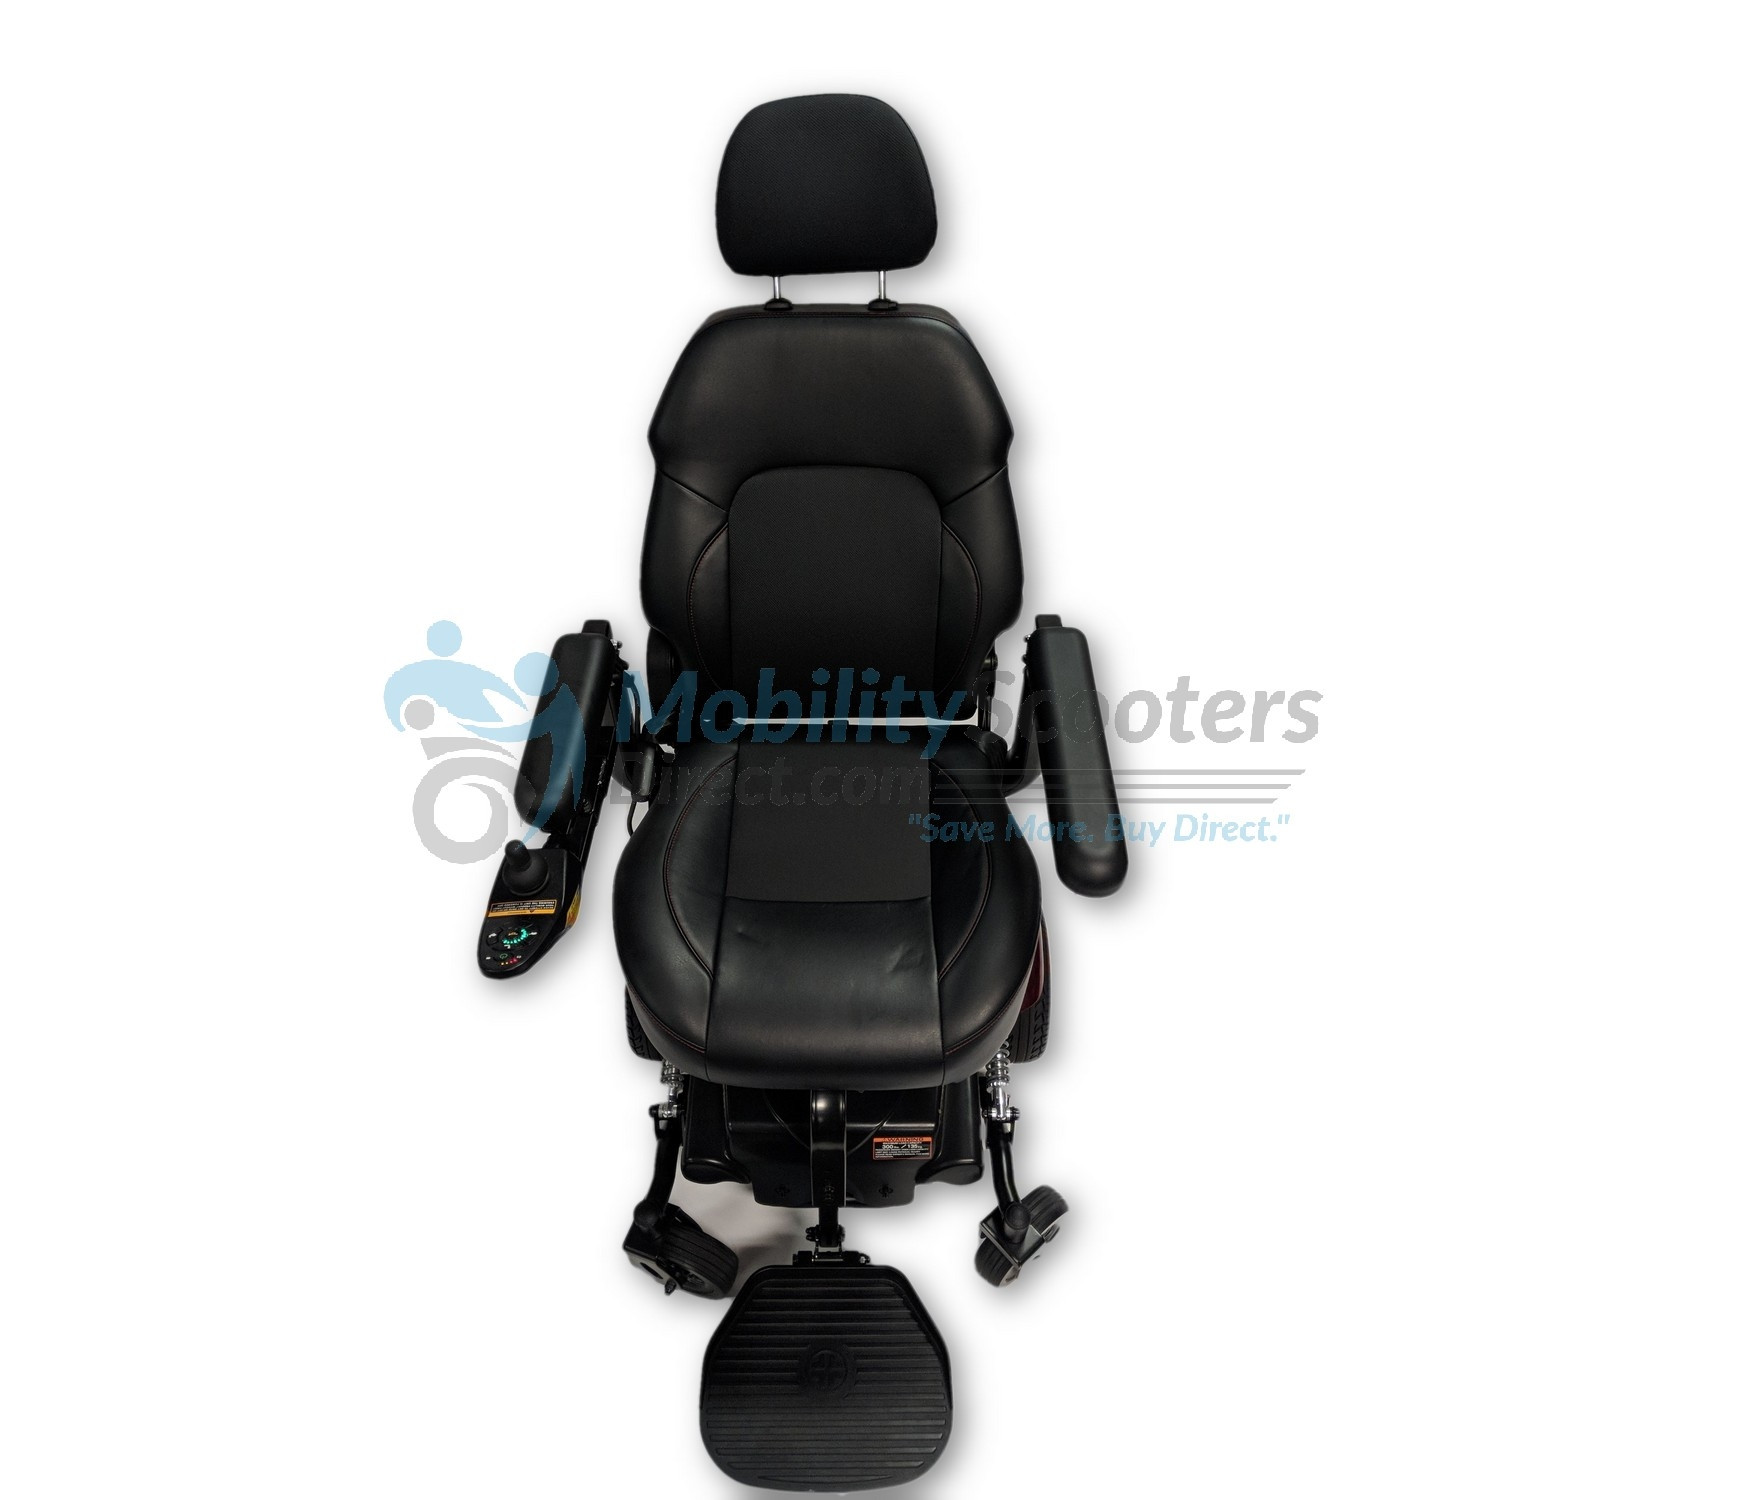 merits power chair amazon loose covers vision sport wheelchair for sale lowest prices